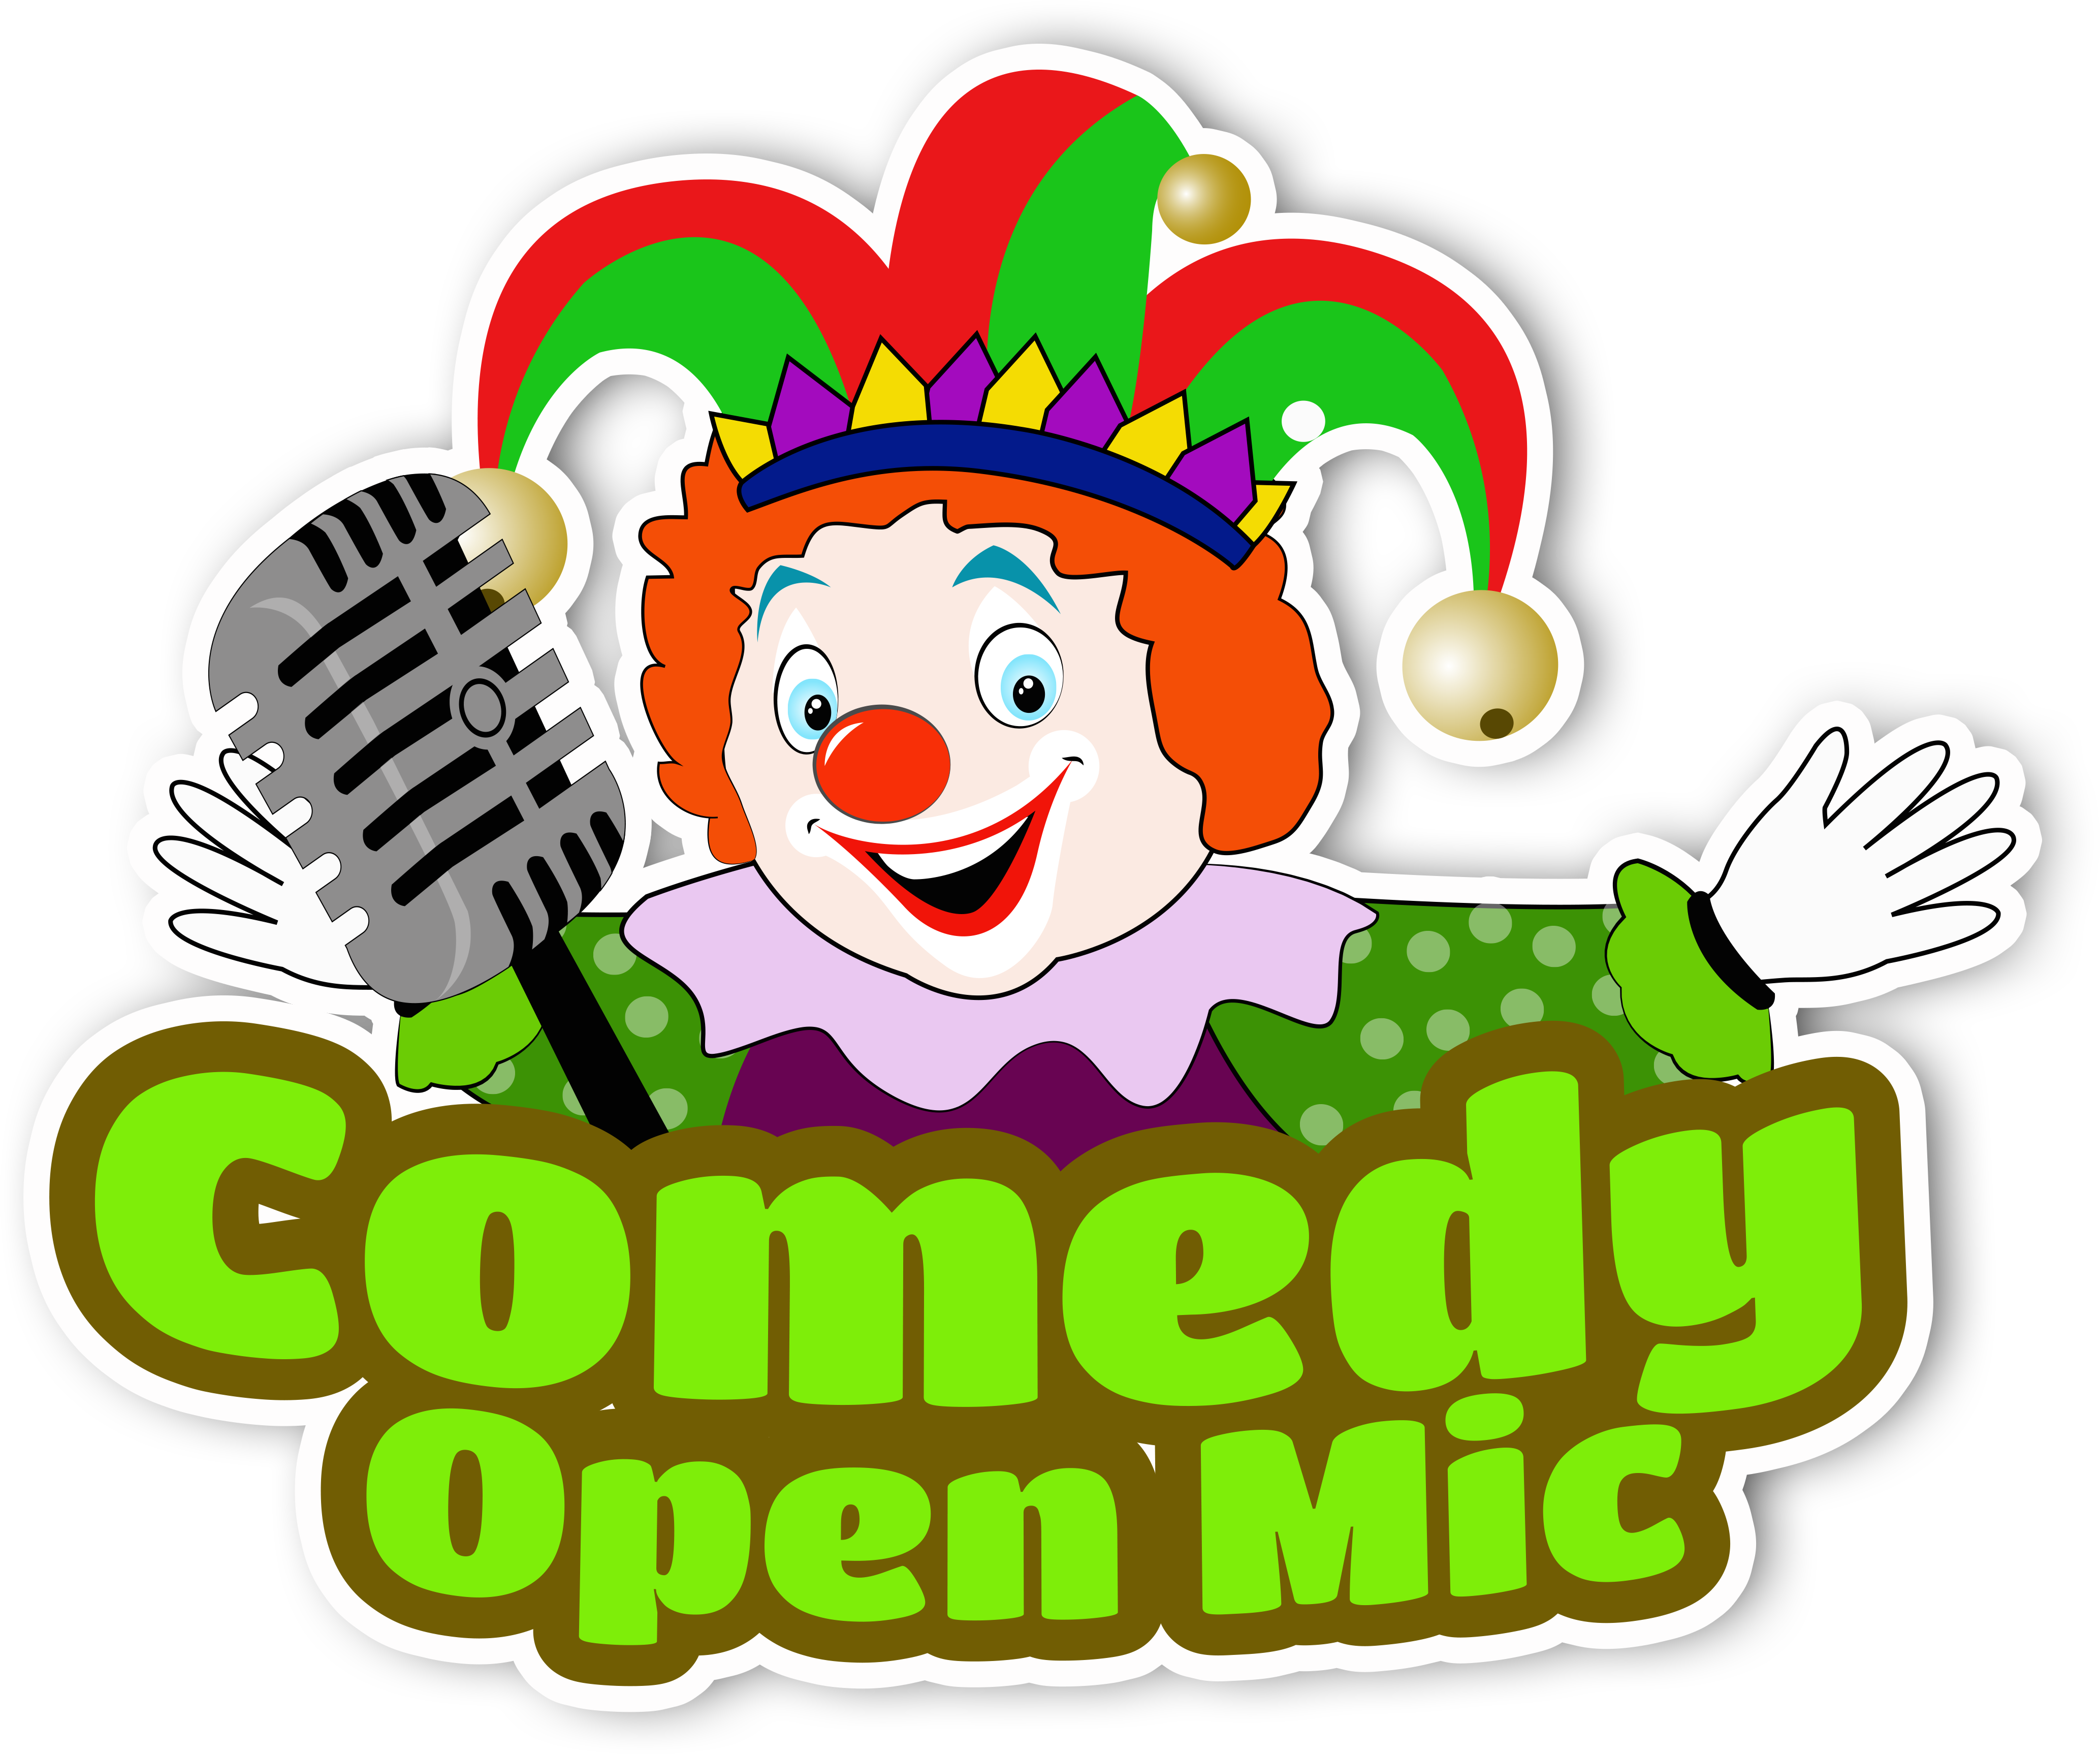 Microphone clipart comedy. Download hd open mic